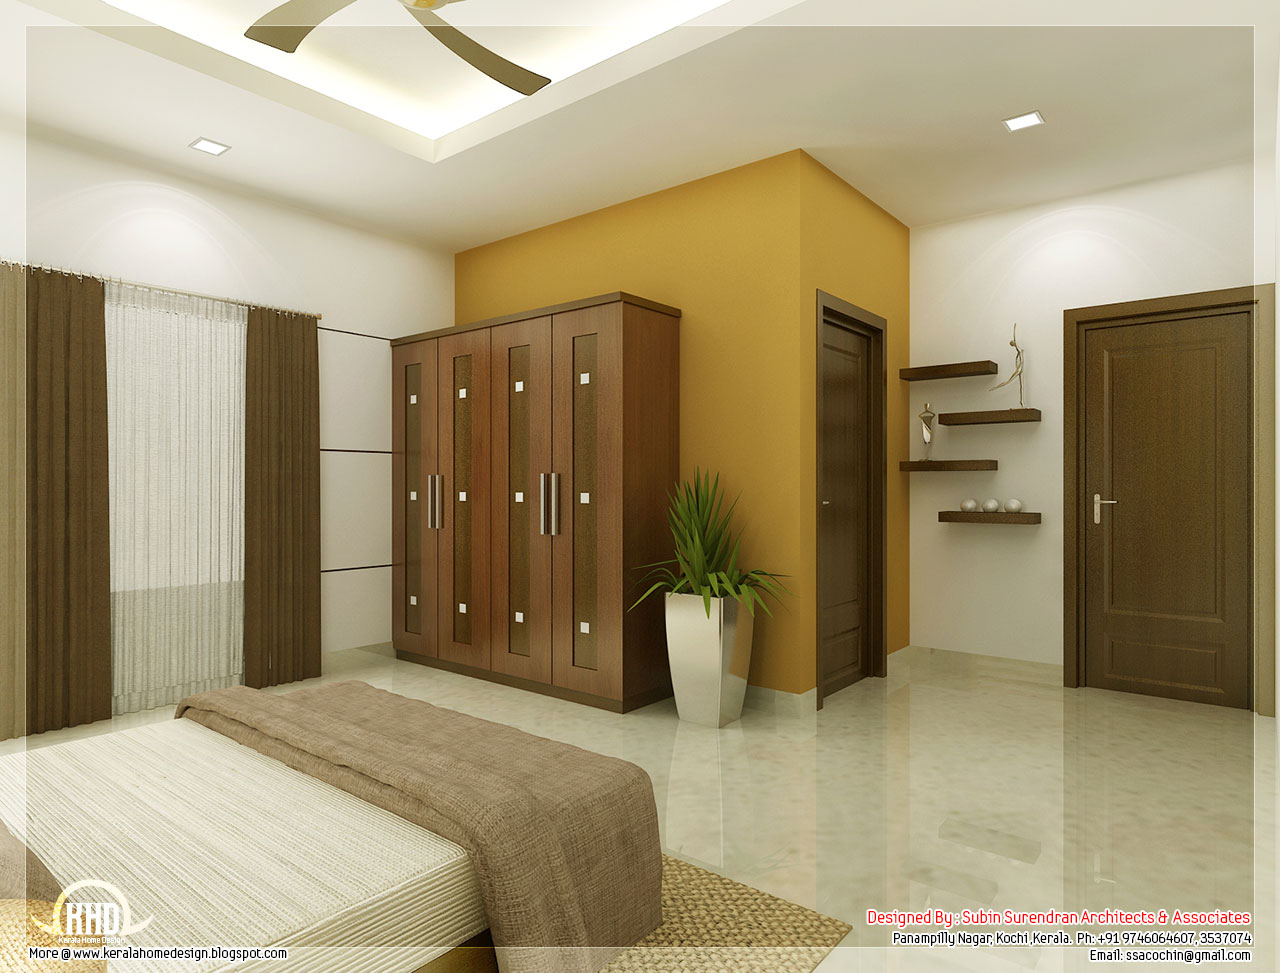 Beautiful bedroom interior designs kerala house design for Interior bedroom designs small rooms